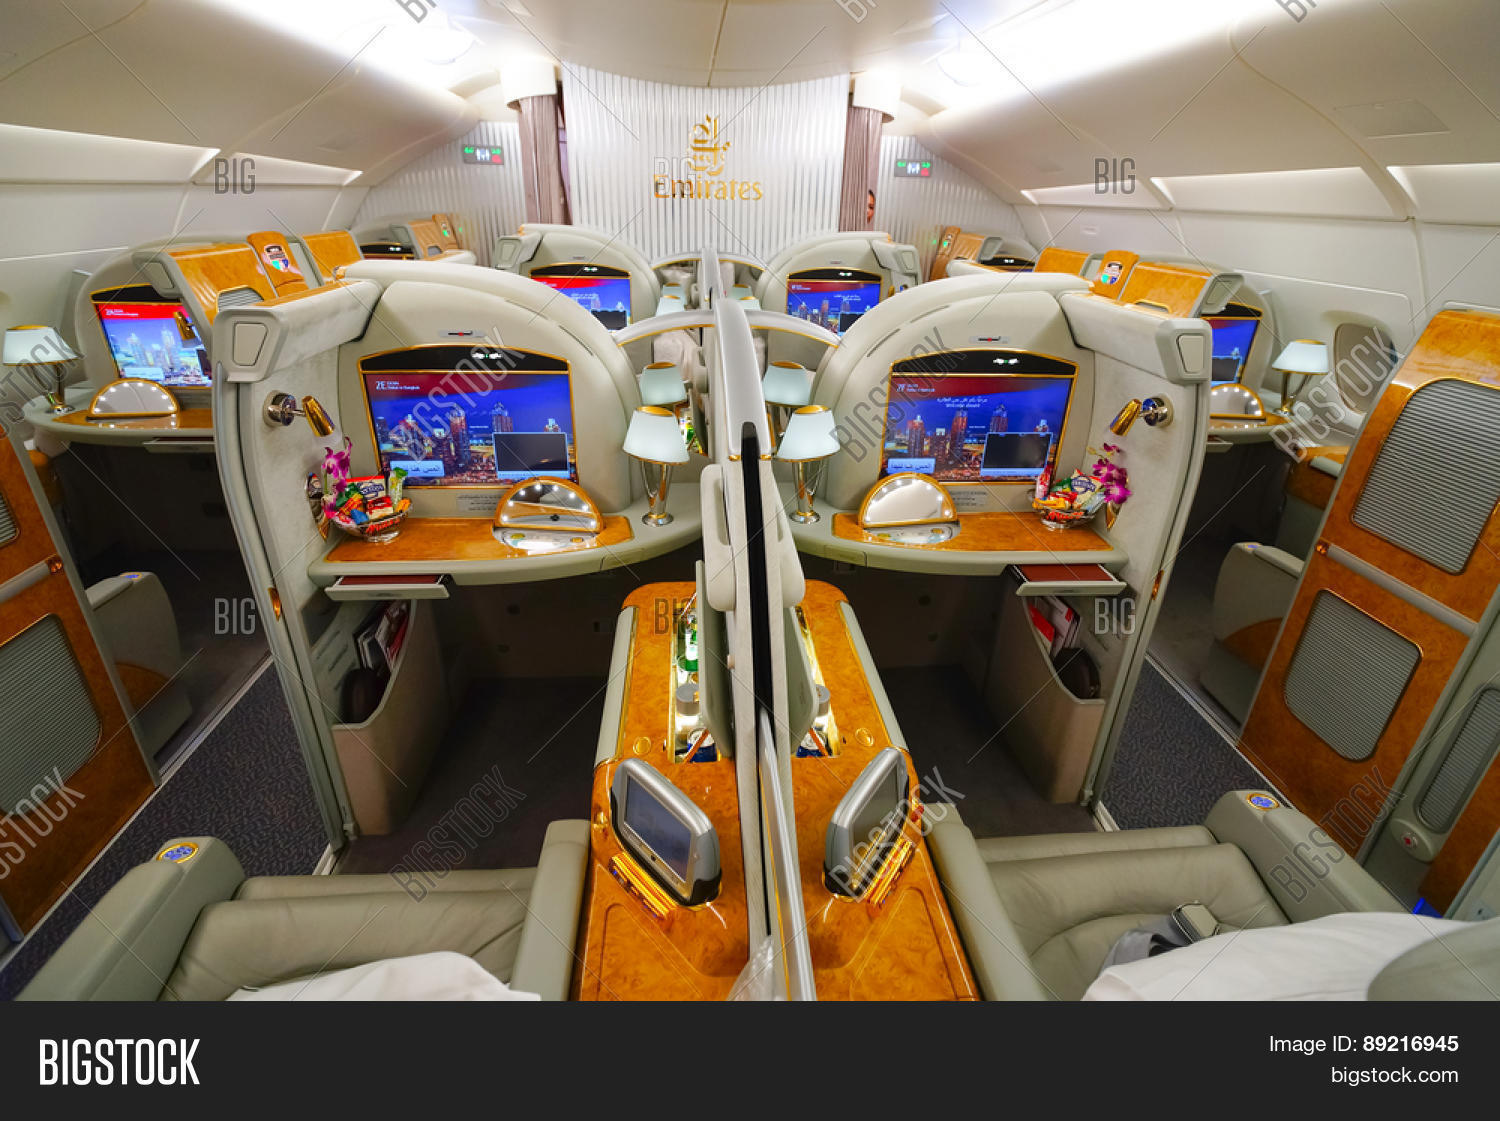 Top airbus a380 interior images for pinterest tattoos for Airbus a380 interior